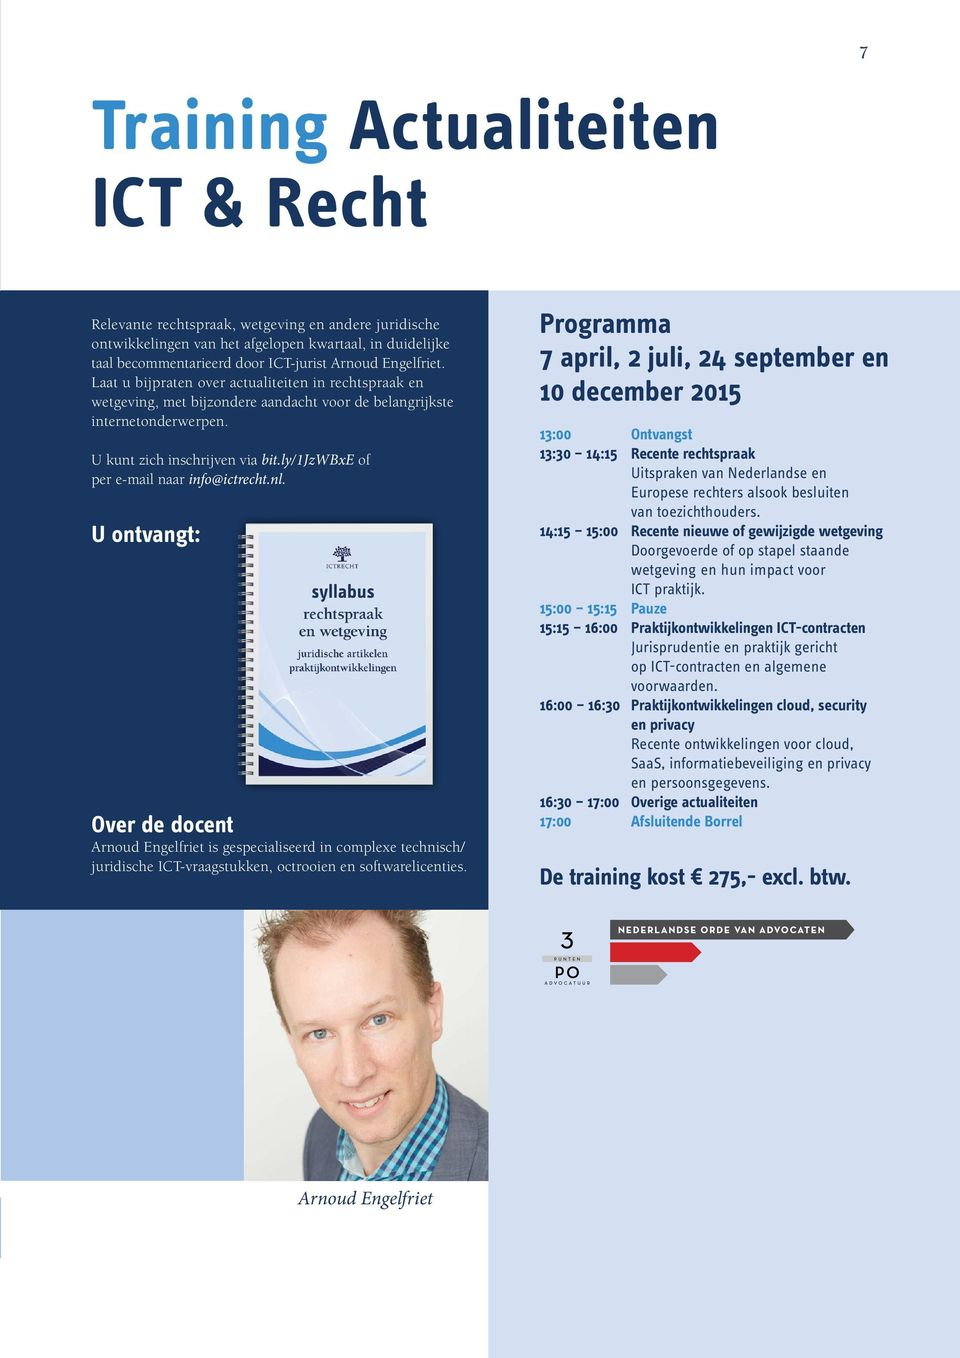 ly/1jzwbxe of per e-mail naar info@ictrecht.nl. U ontvangt: Over de docent Arnoud Engelfriet is gespecialiseerd in complexe technisch/ juridische ICT-vraagstukken, octrooien en softwarelicenties.